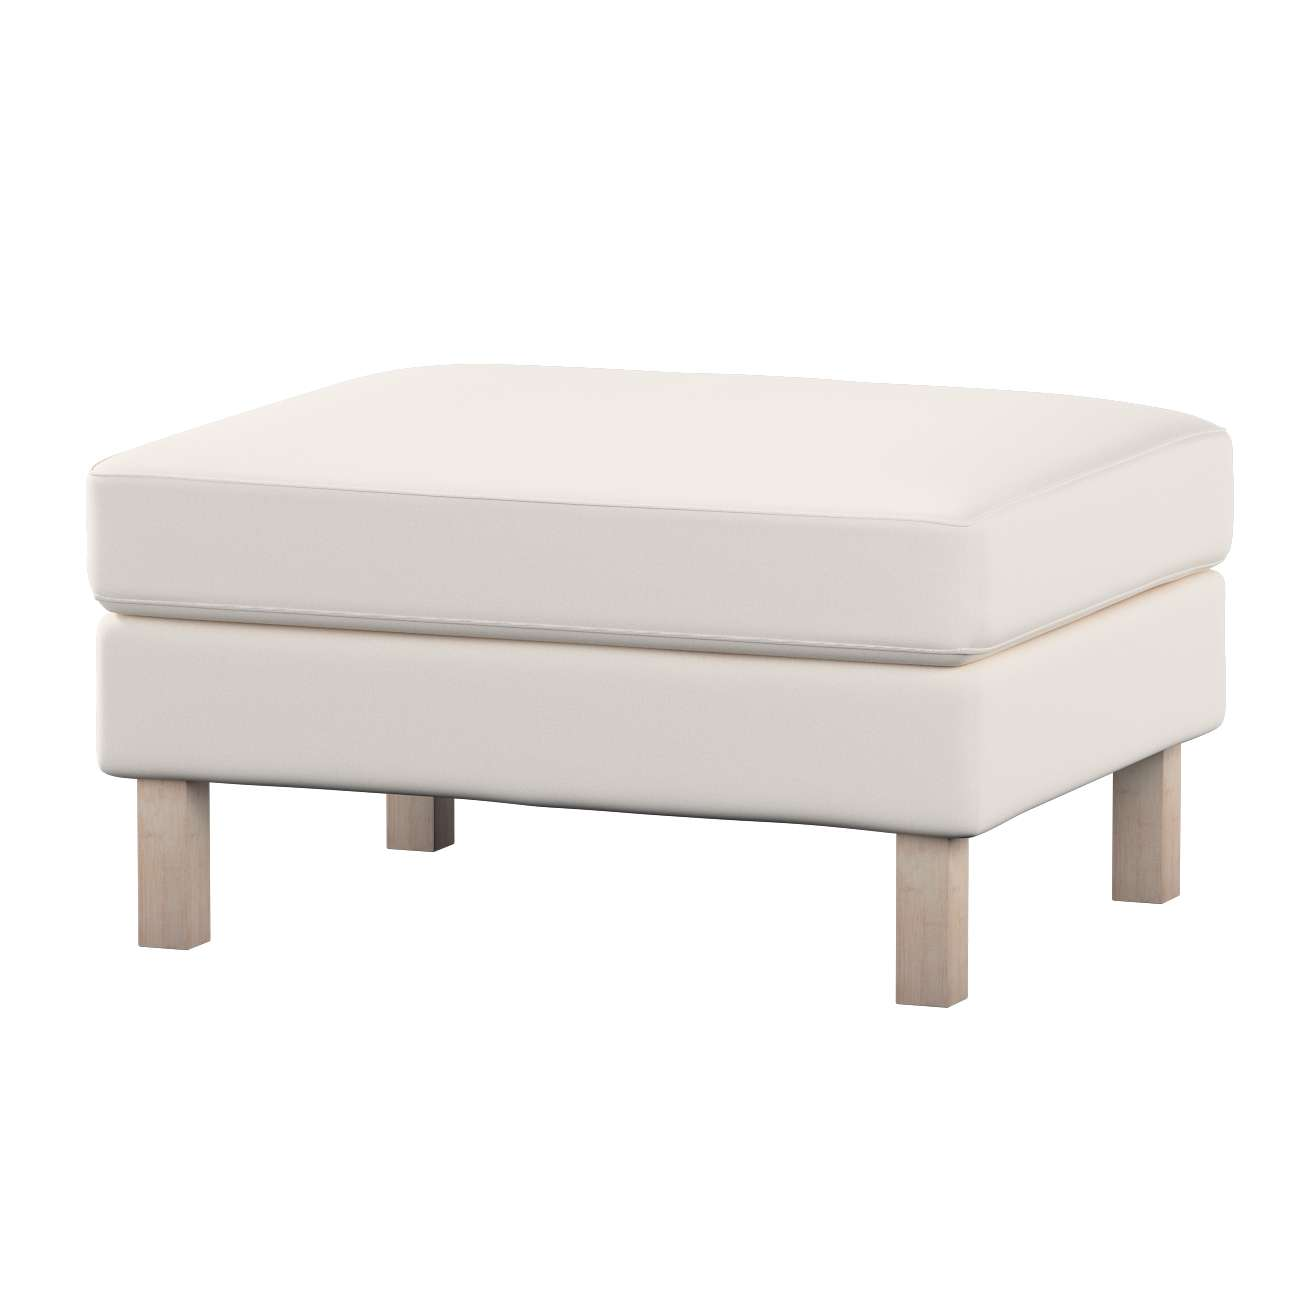 Karlstad footstool cover Karlstad footstool cover in collection Etna, fabric: 705-01